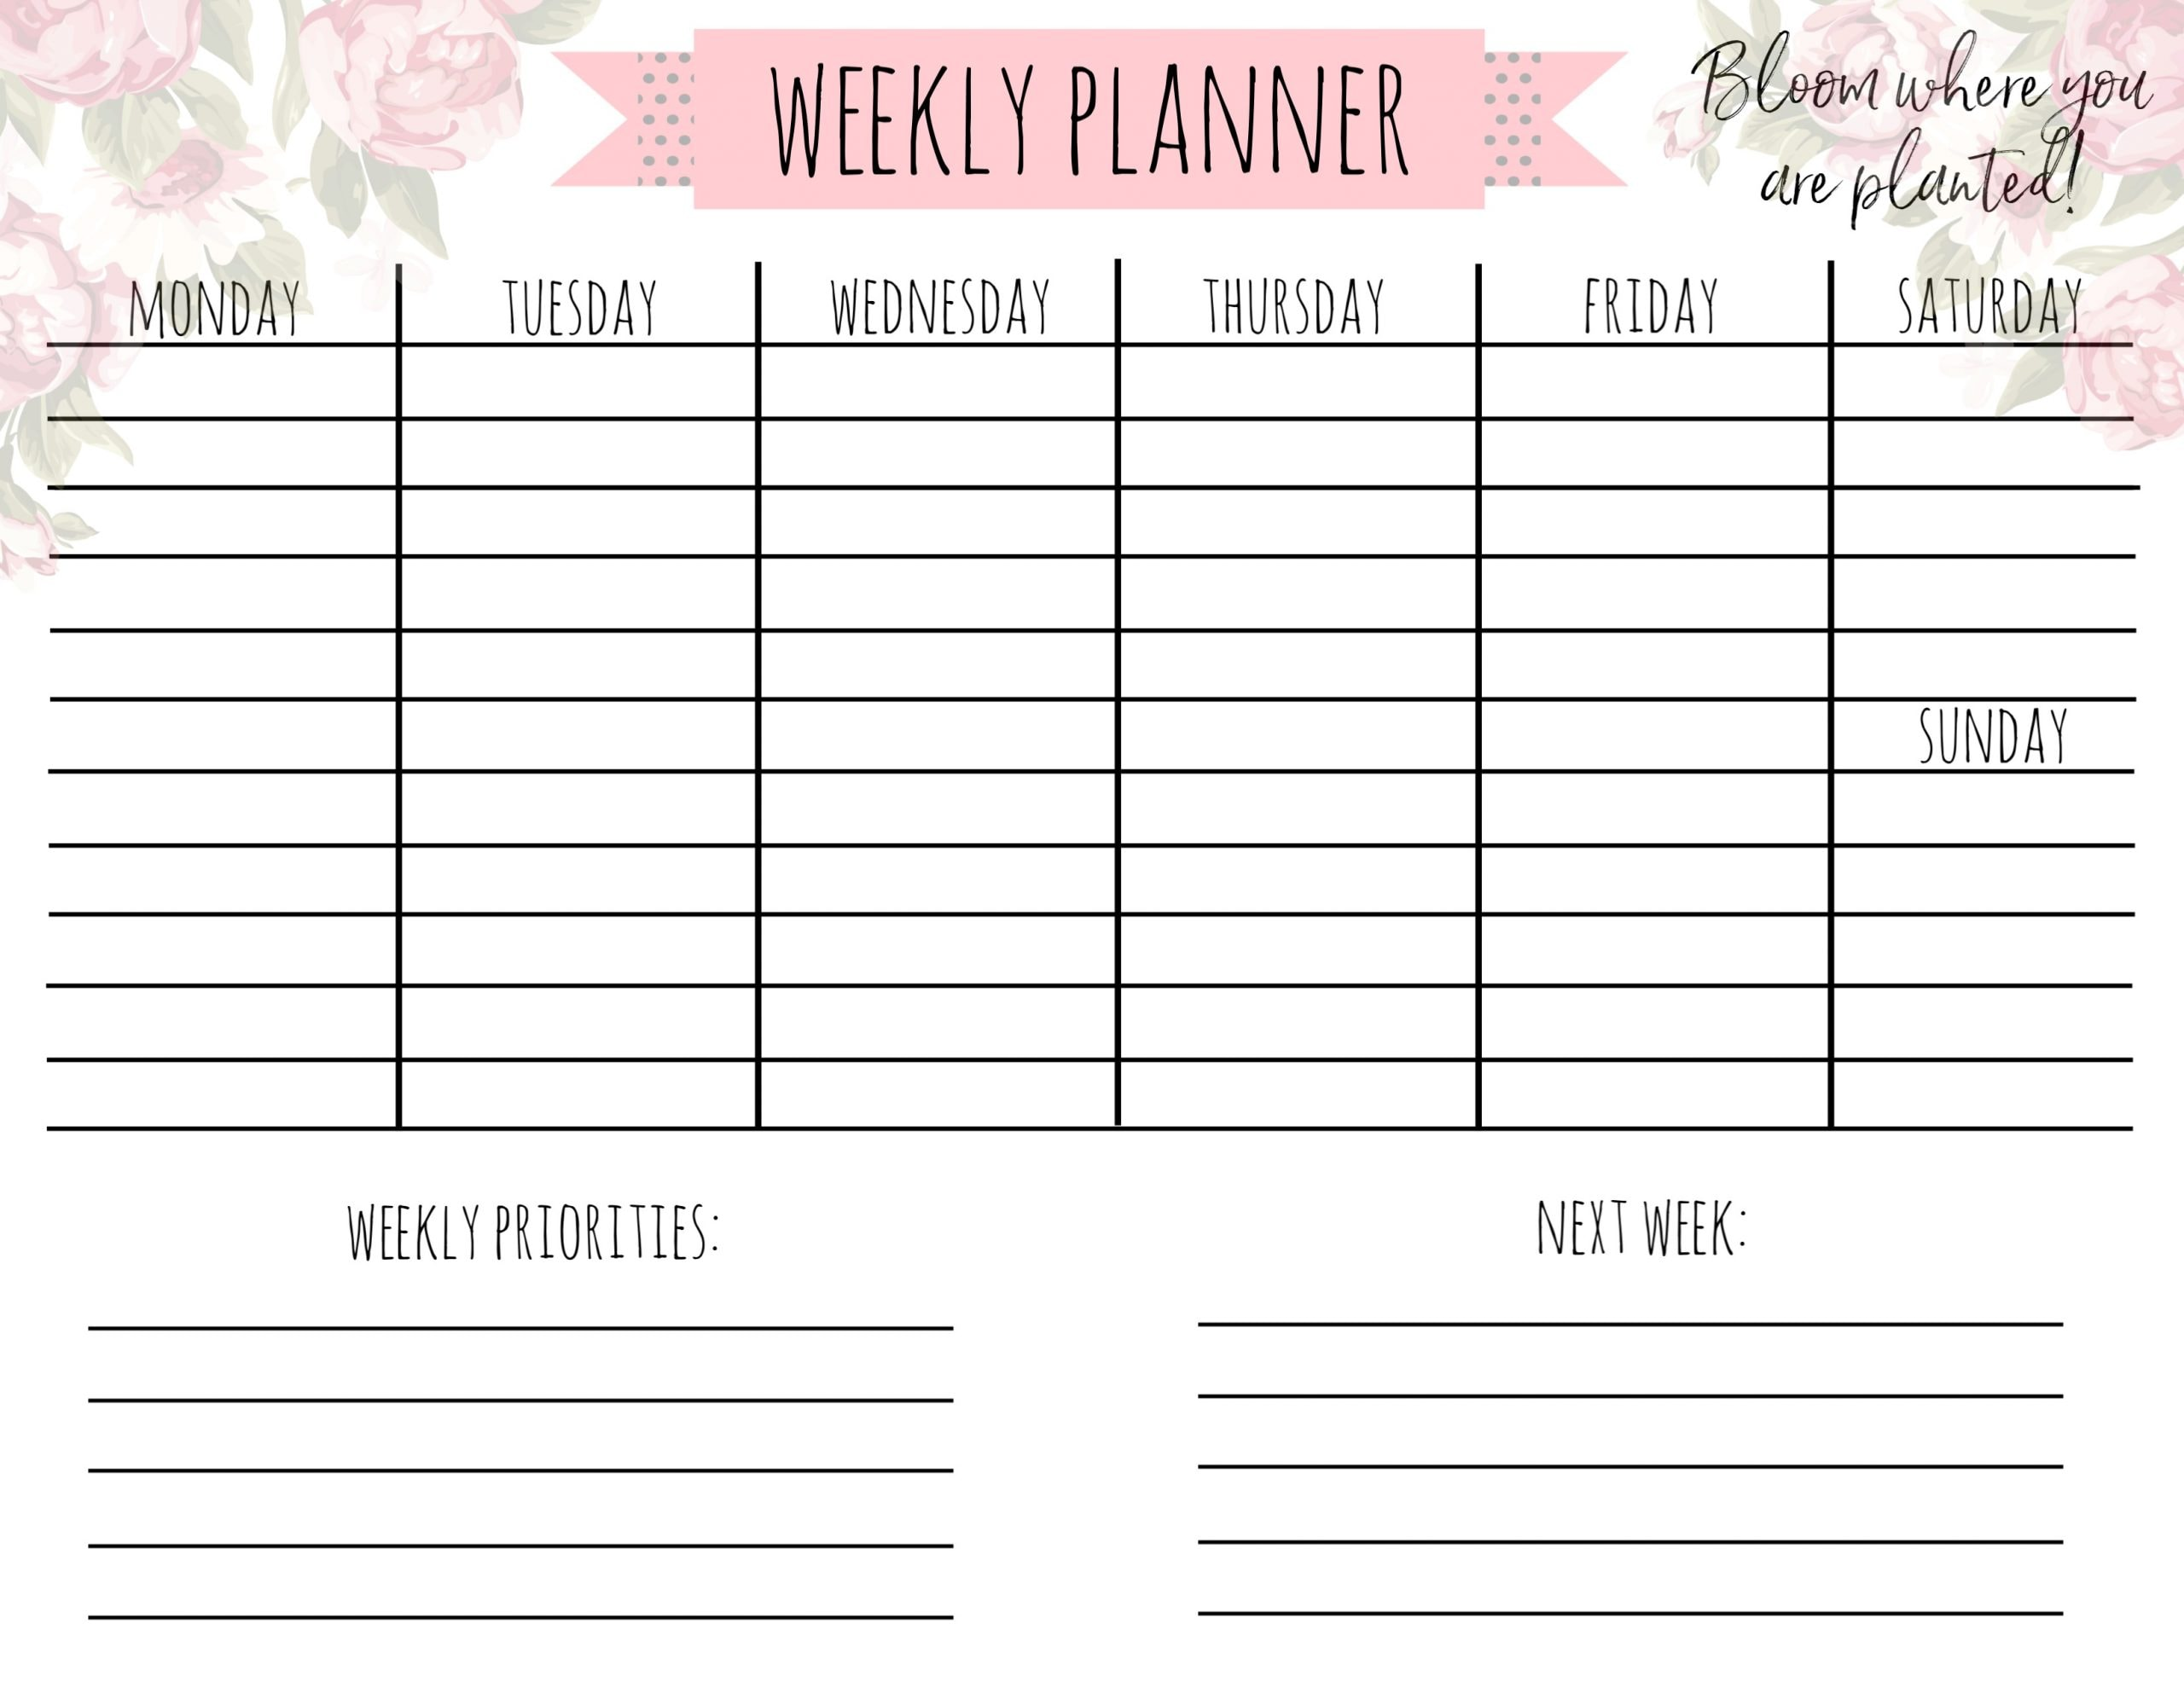 Planner with floral background with weekly priorities